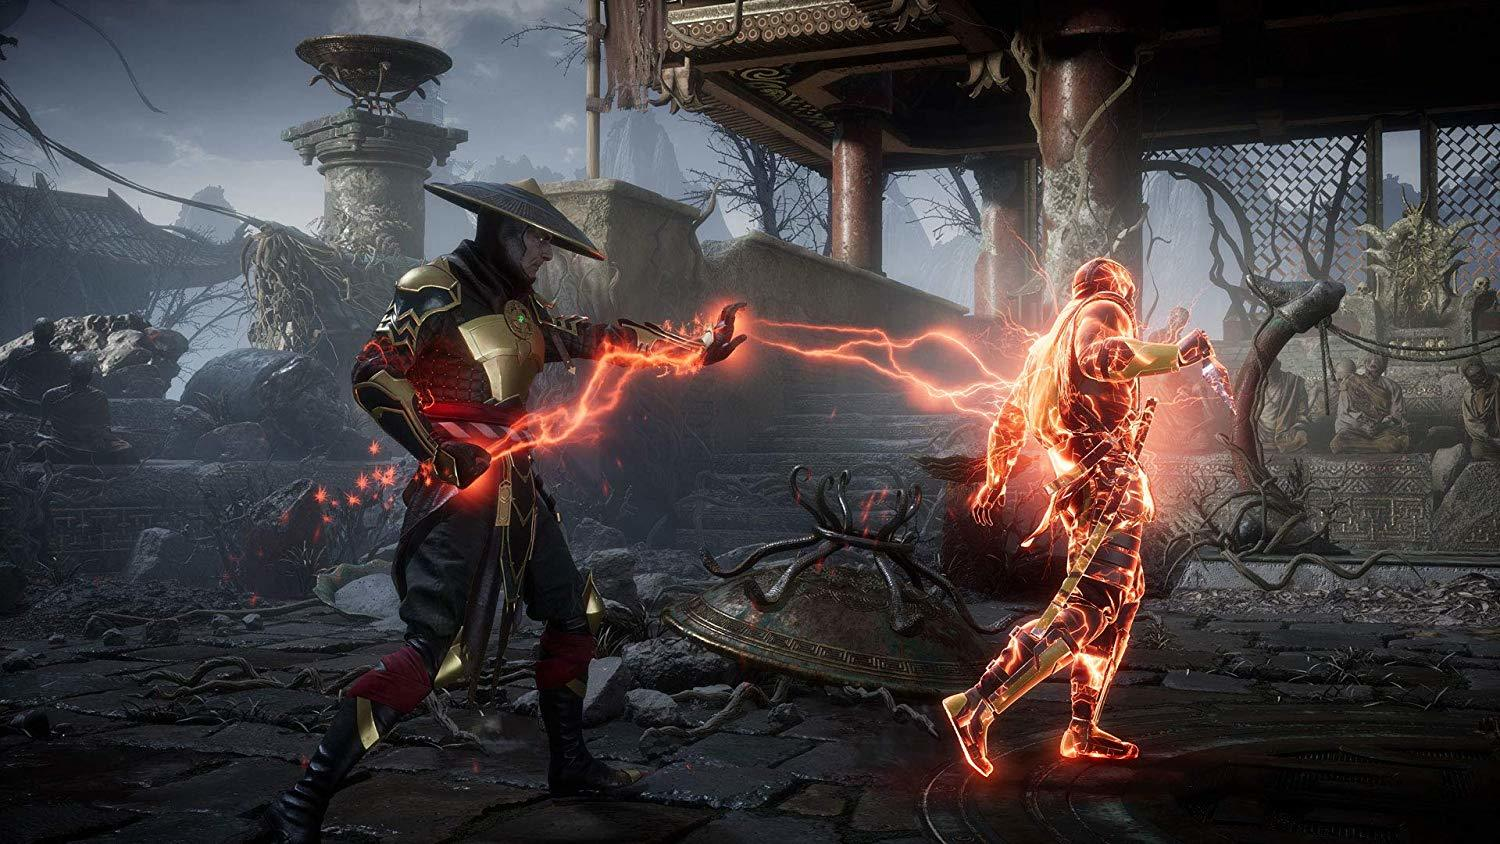 Mortal Kombat 11 Steelbook Edition for Xbox One image